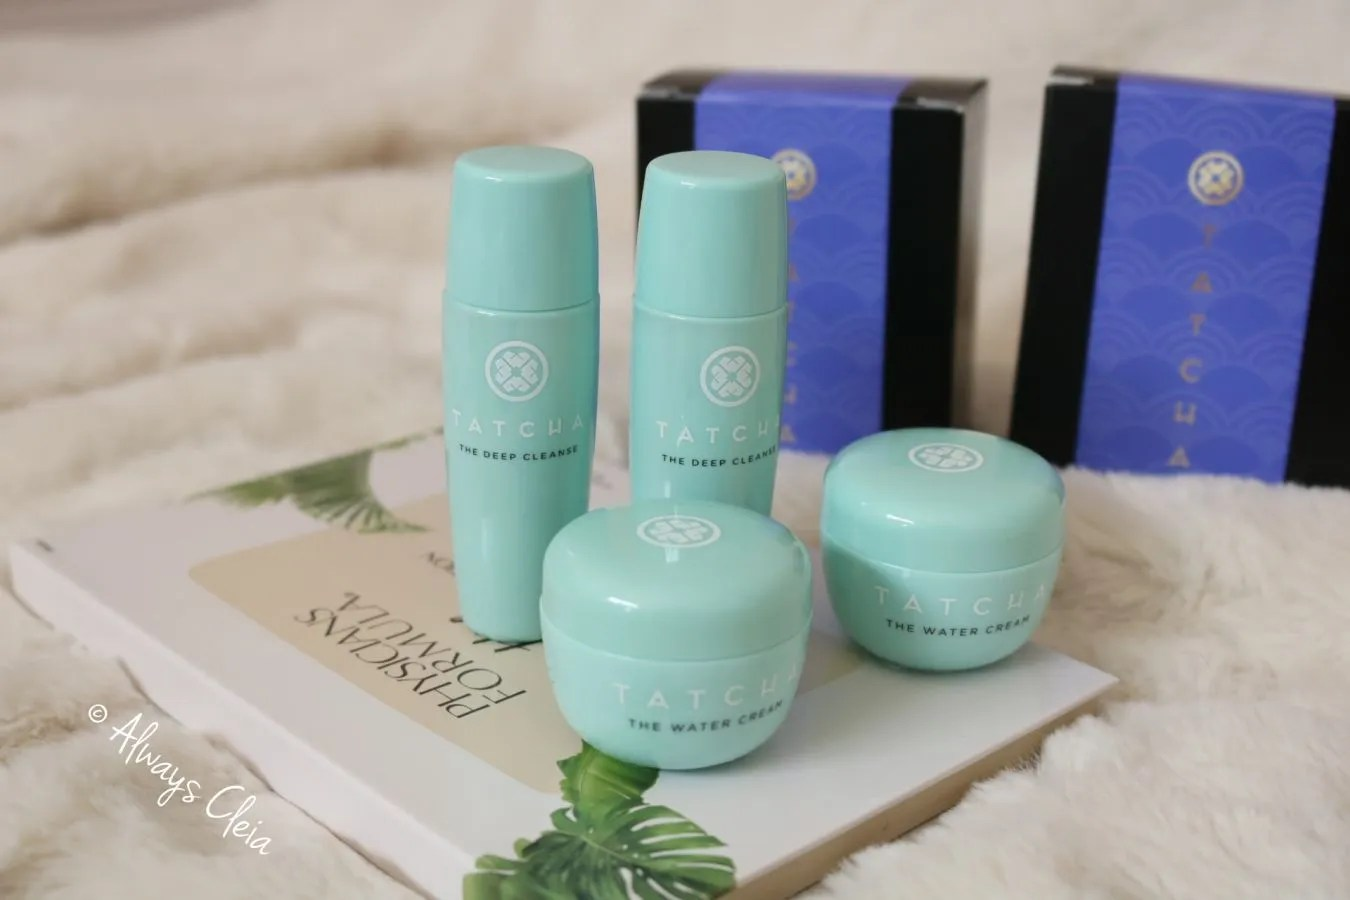 Tatcha Routine Refresher